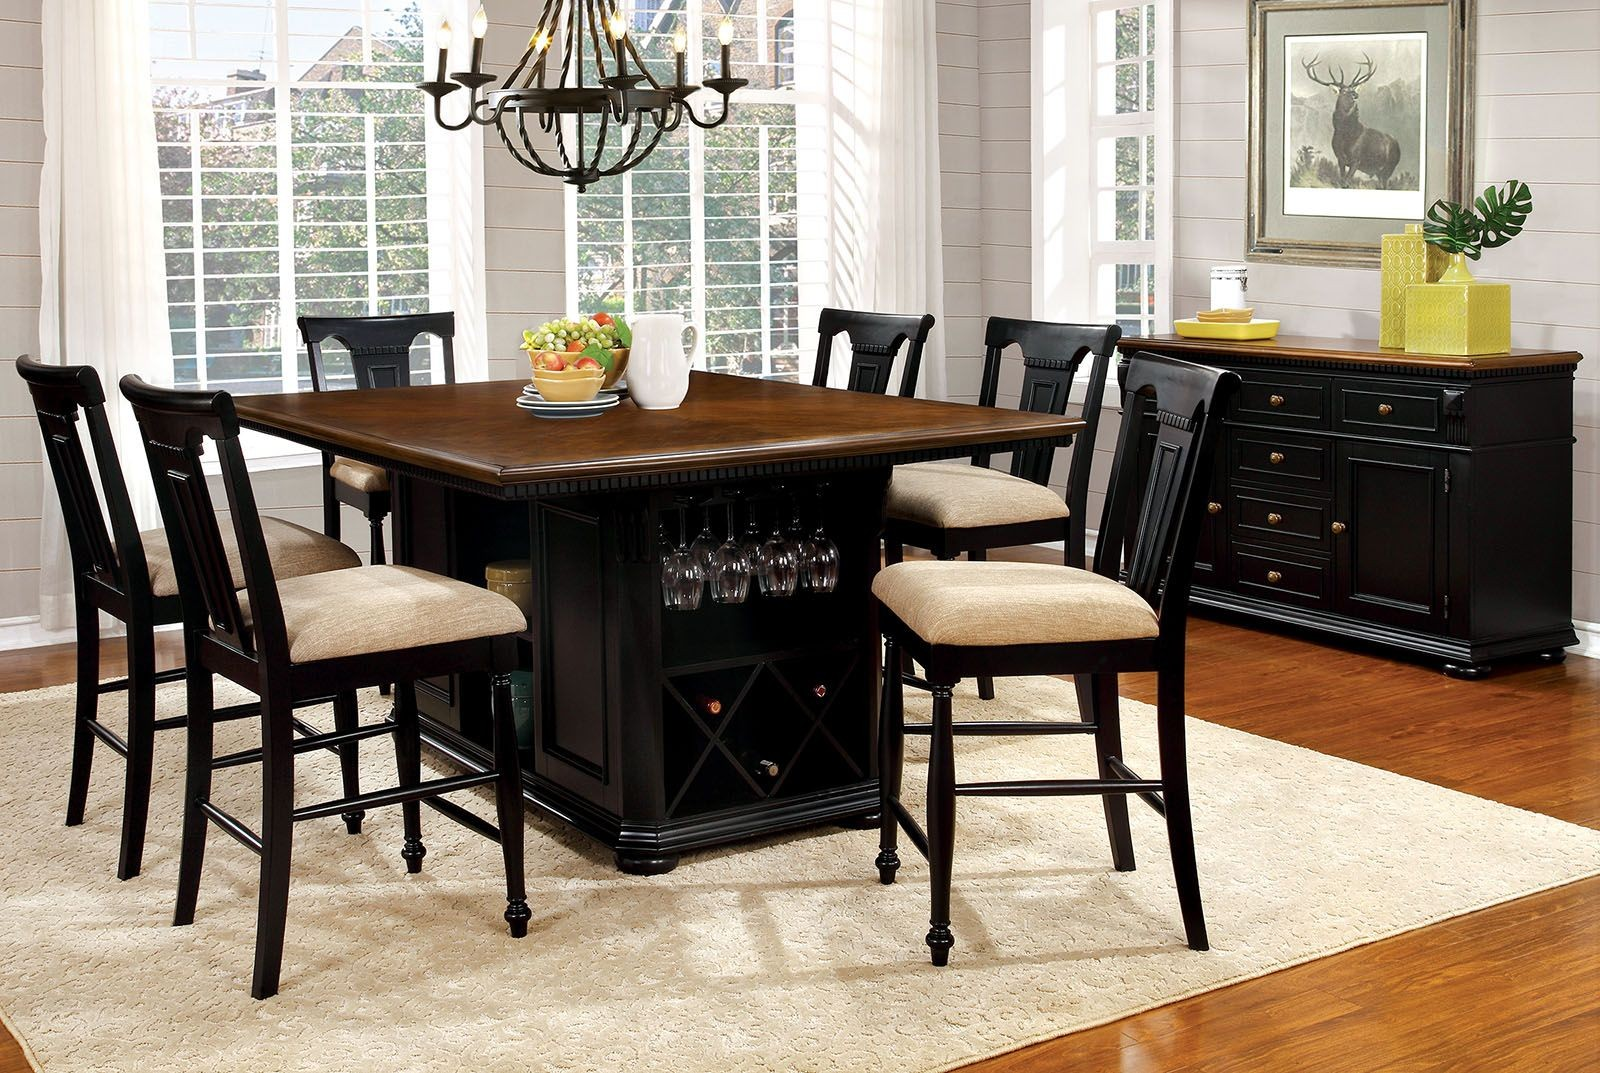 Sabrina Cherry Amp Black Counter Height Dining Room Set From